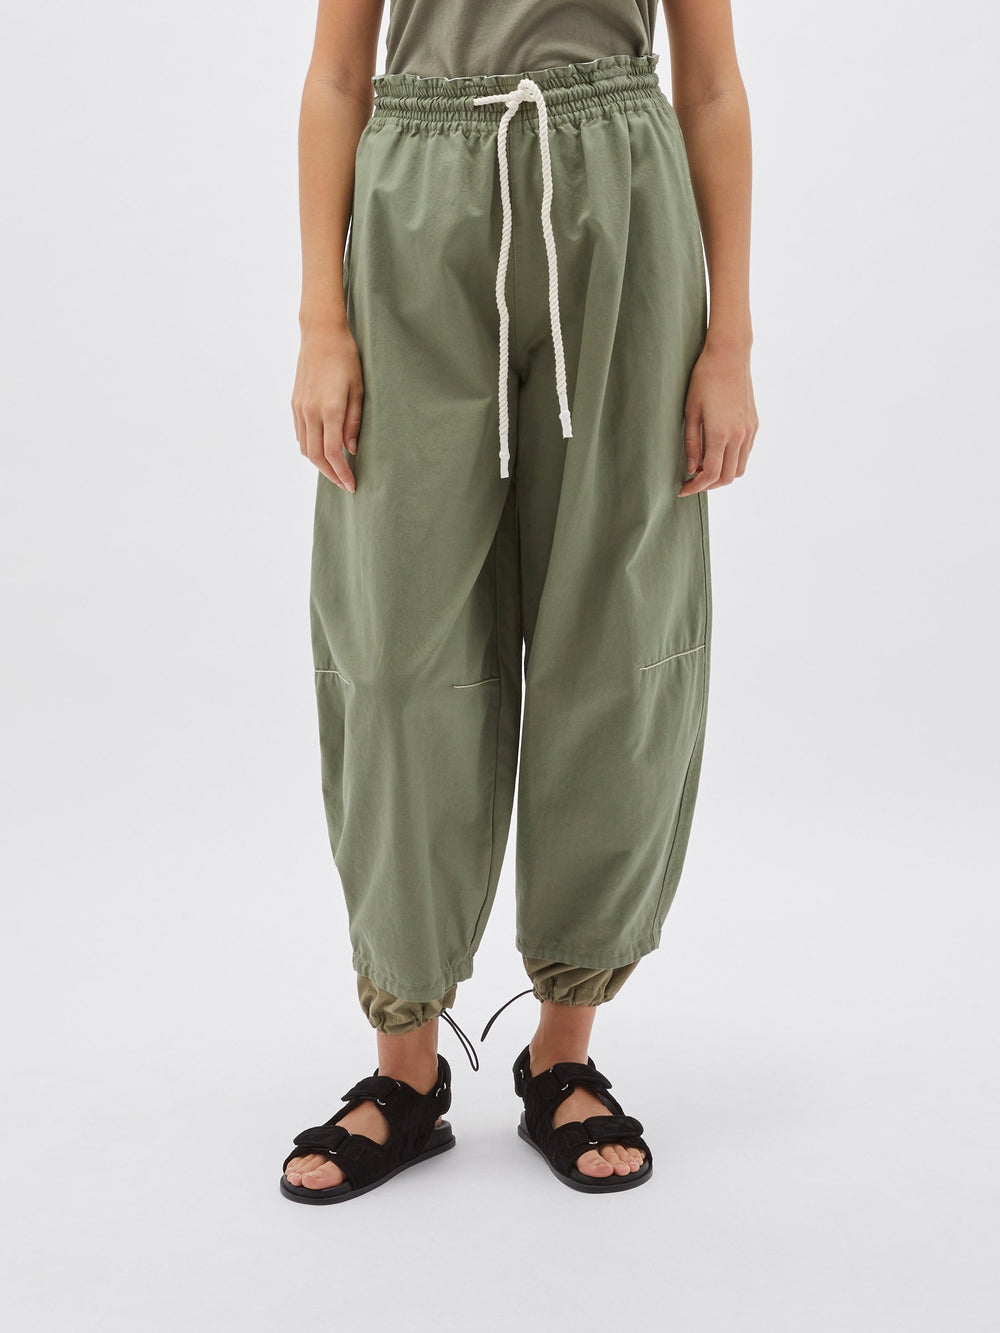 pull on parachute detail pant